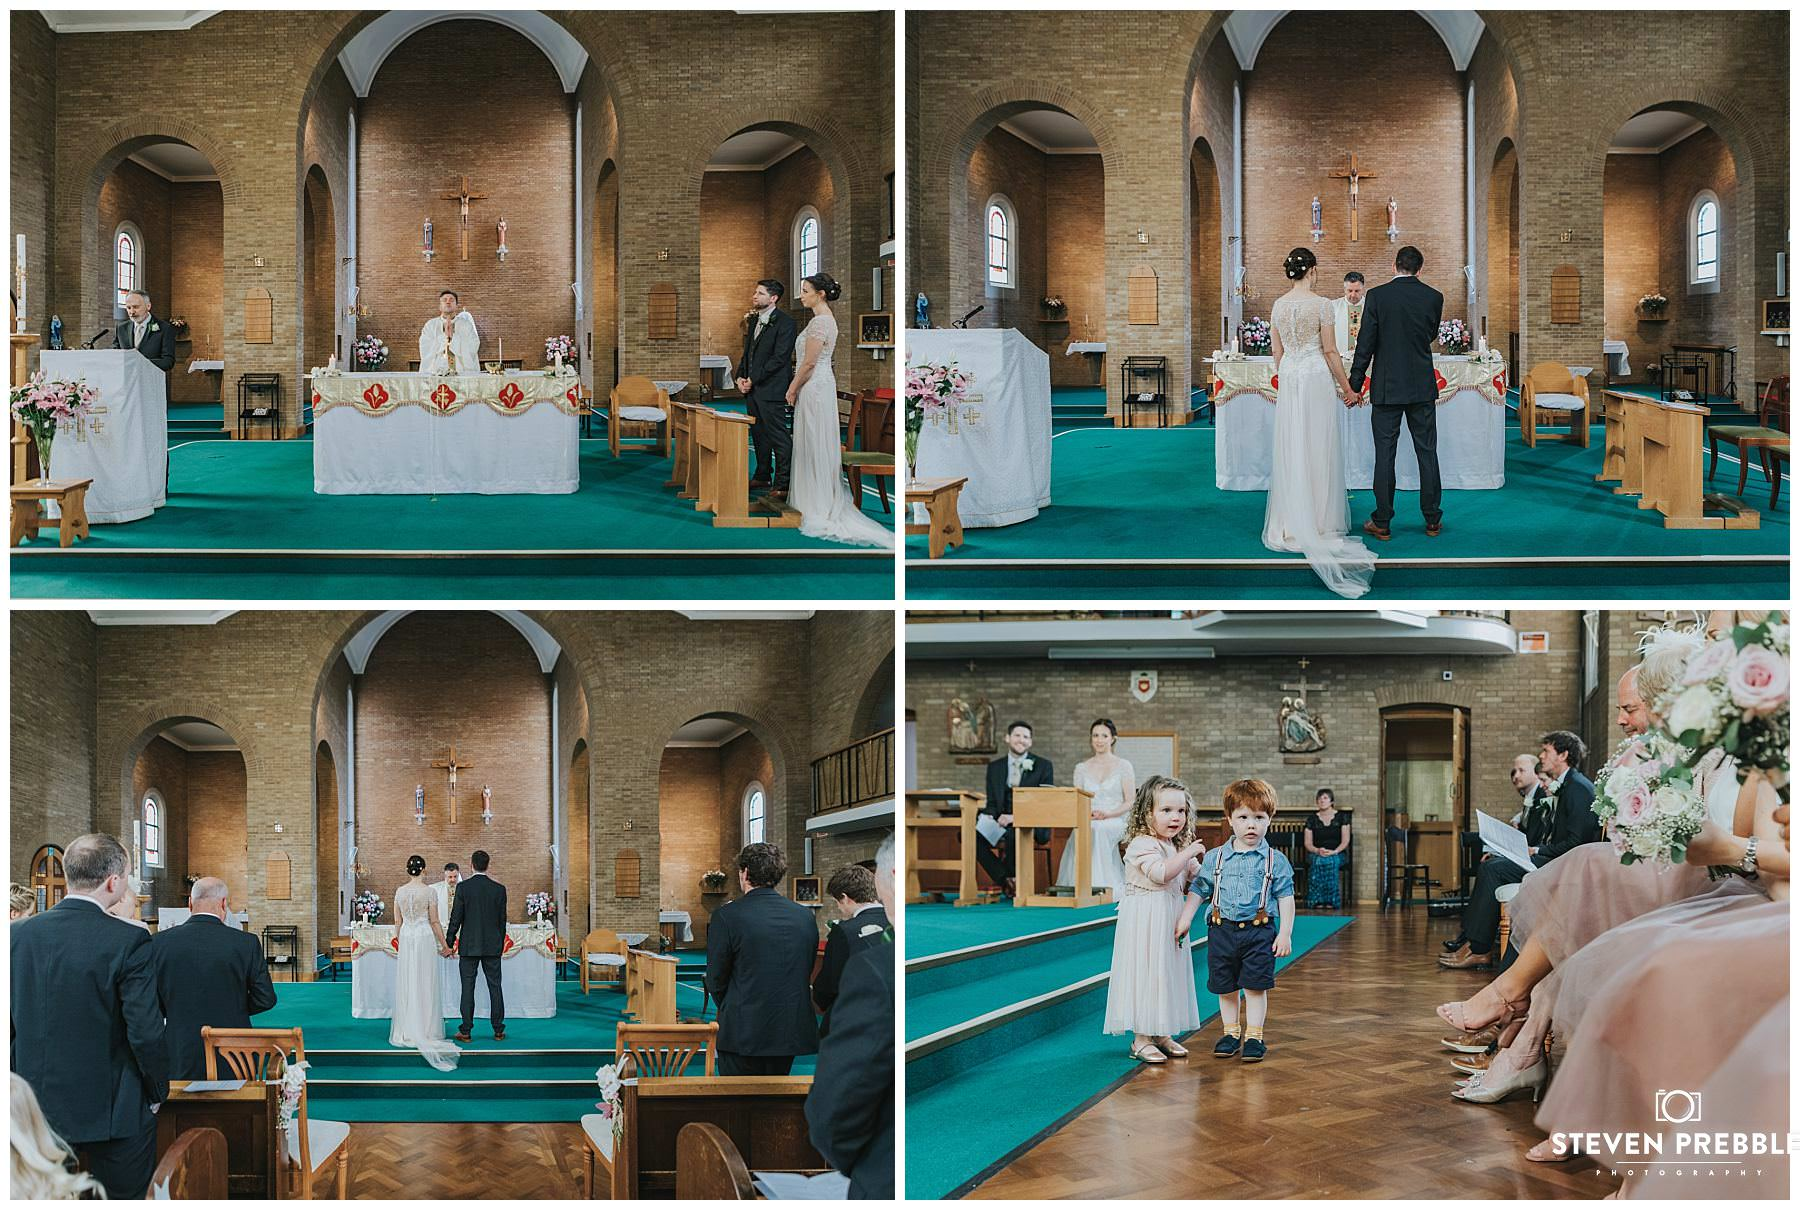 Bride and groom at alter of church